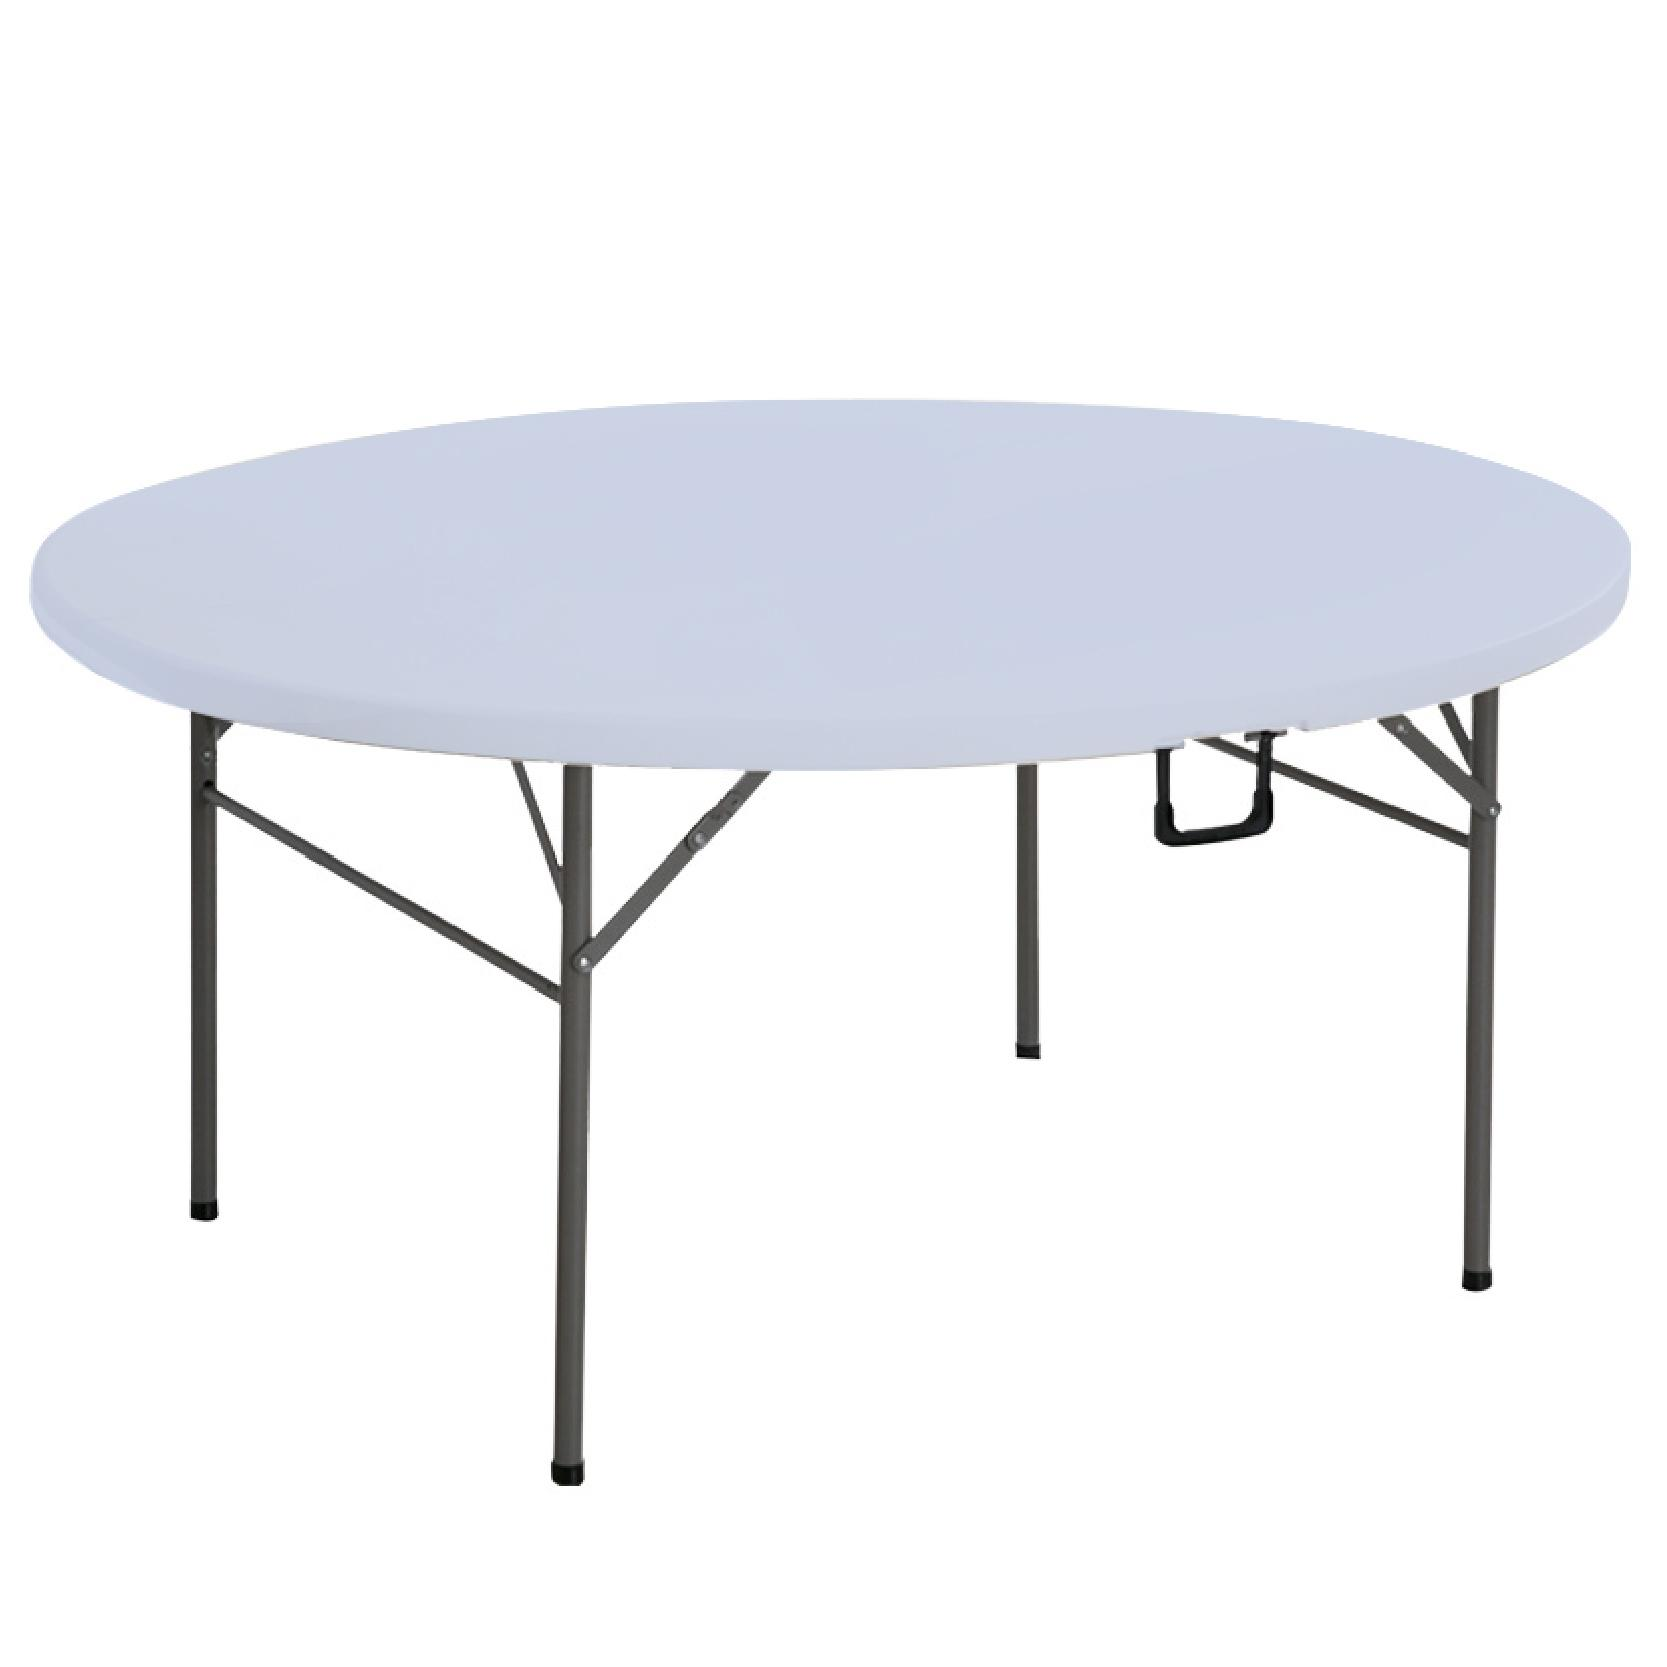 JIJI Portable Travel Outdoor Folding HDPE Round Table - Outdoors / Foldable / Furniture (SG)